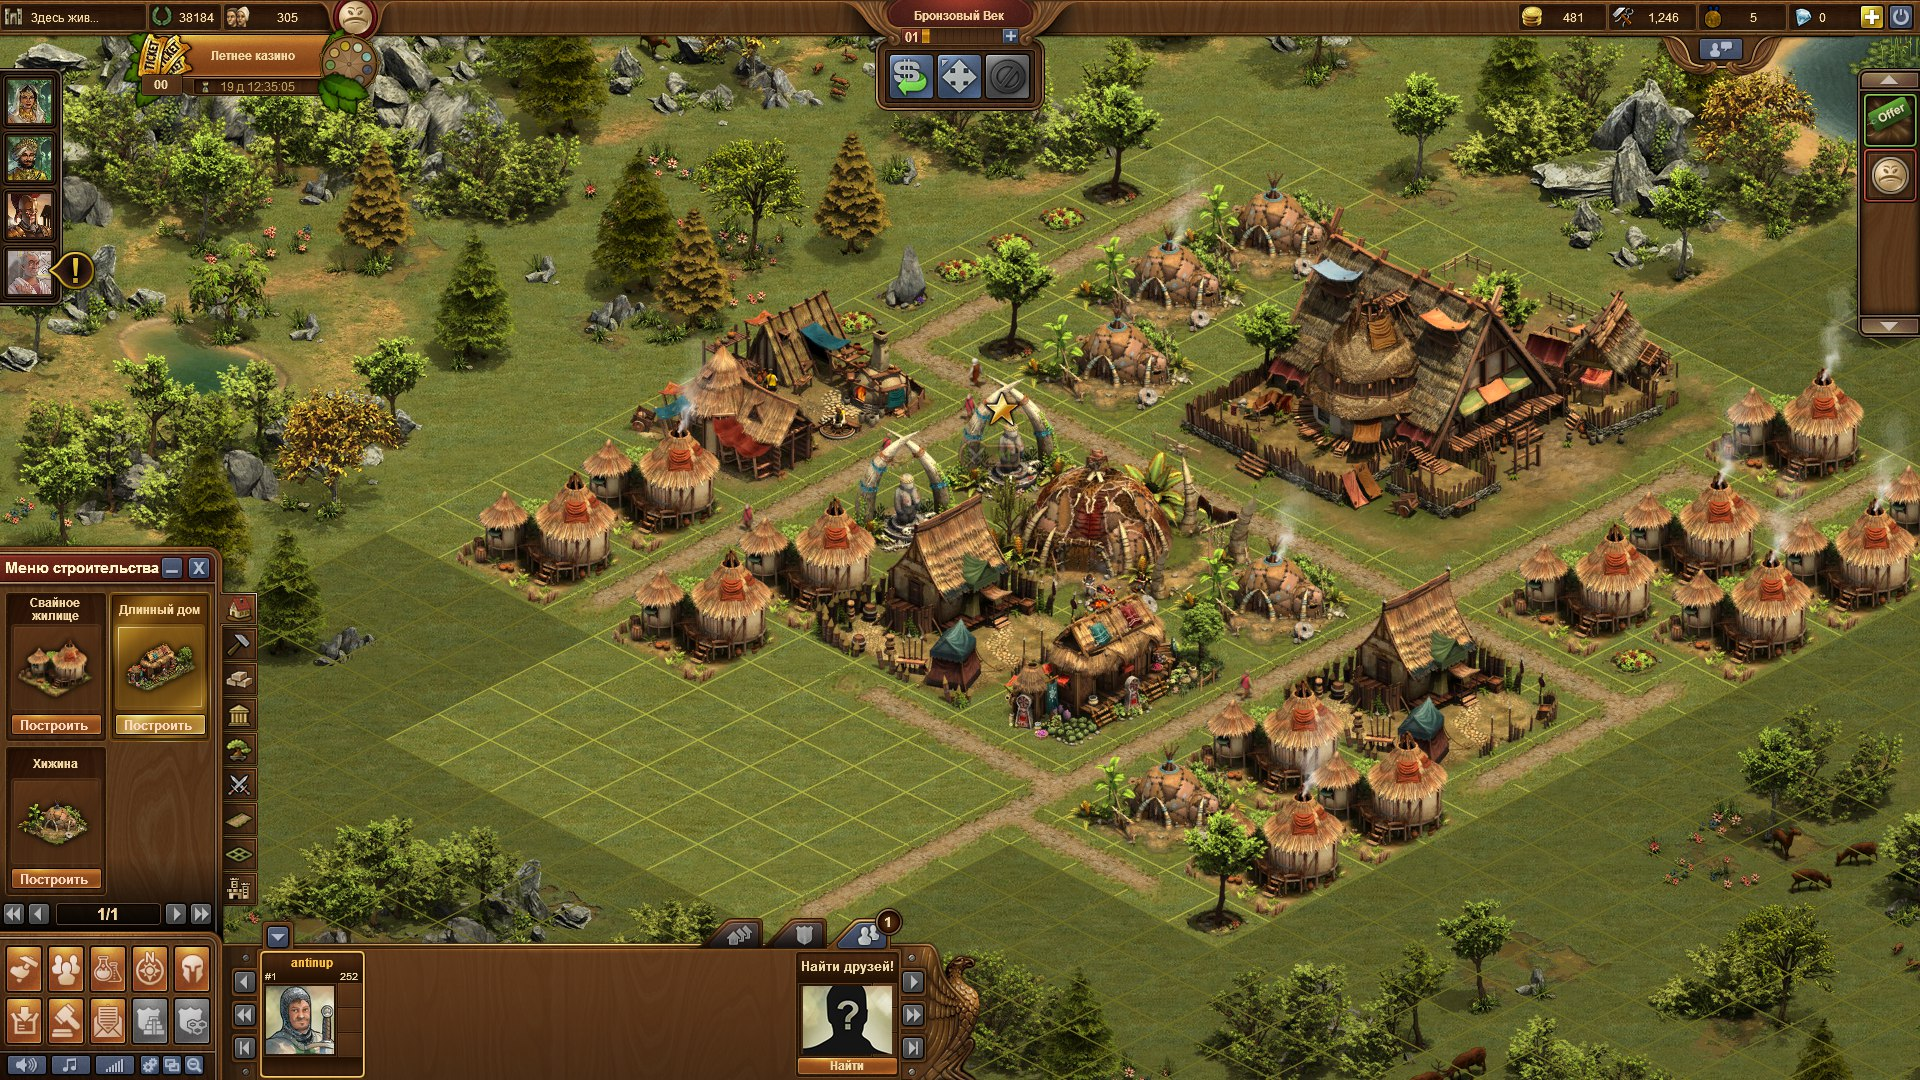 Forge of Empires - обзор игры - картинки